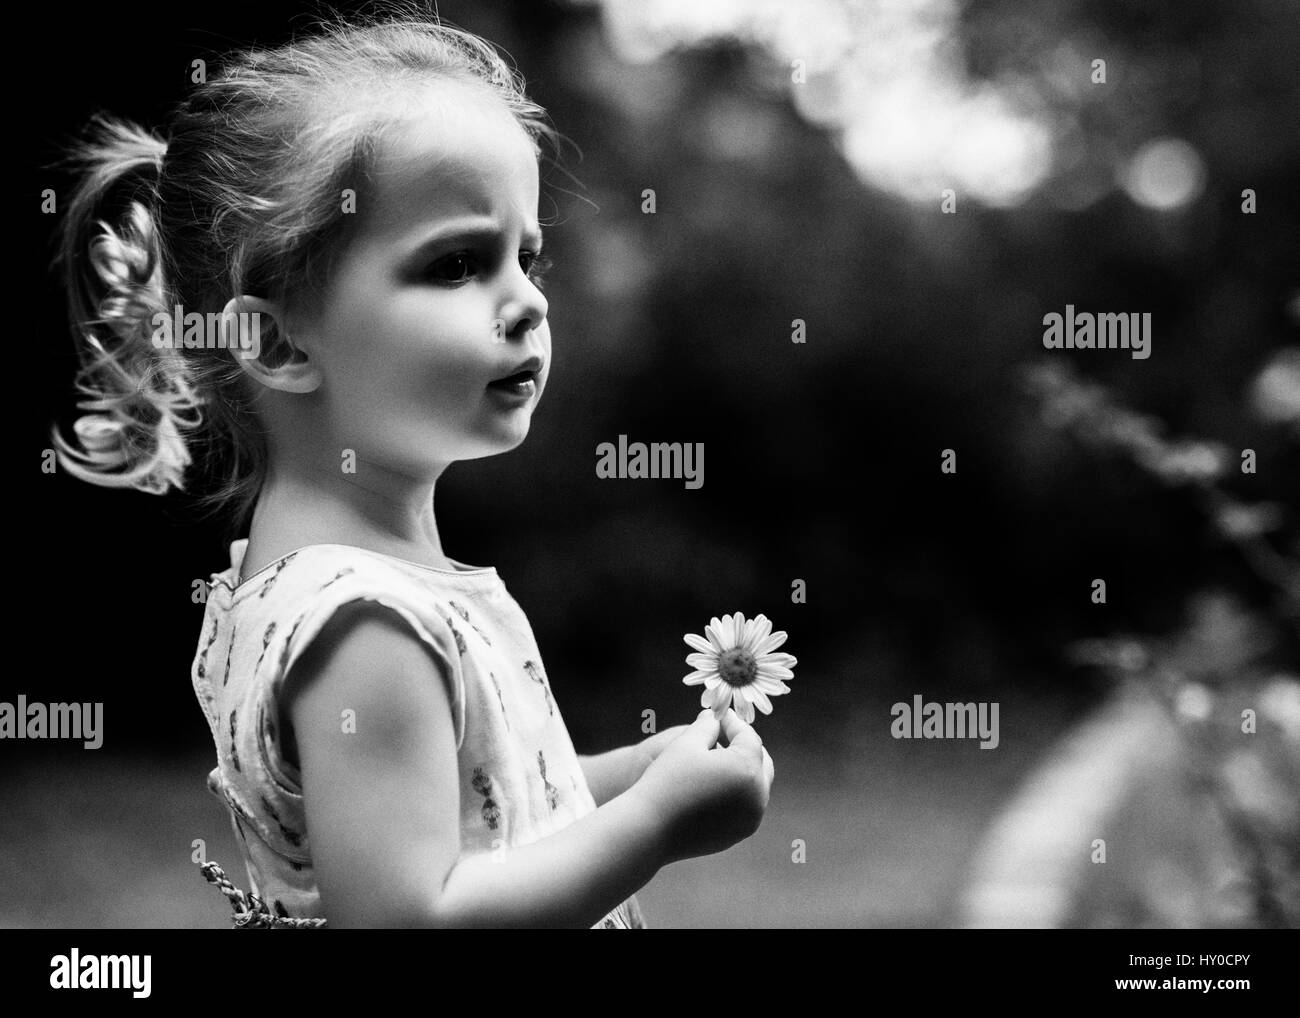 Girl Holding Flowers Black And White Stock Photos Images Alamy